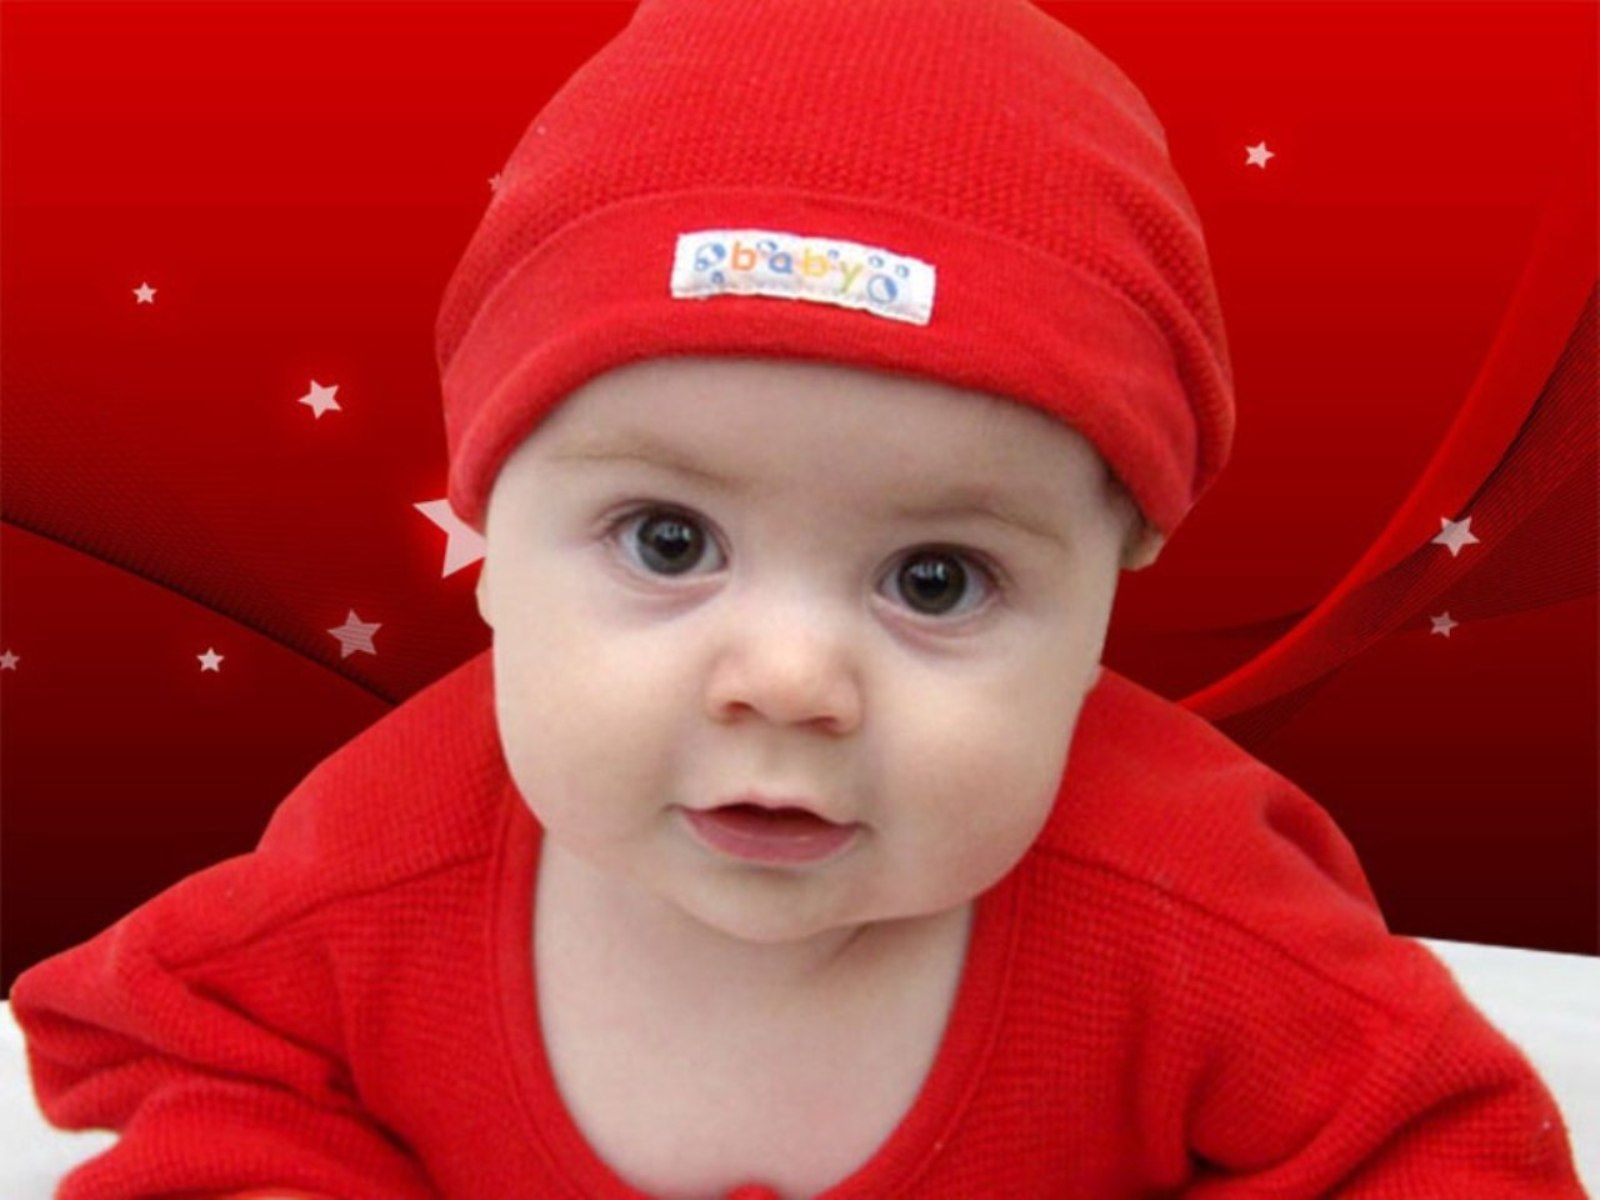 62b22556d1d6 Cute Baby In Red Dress Wallpaper